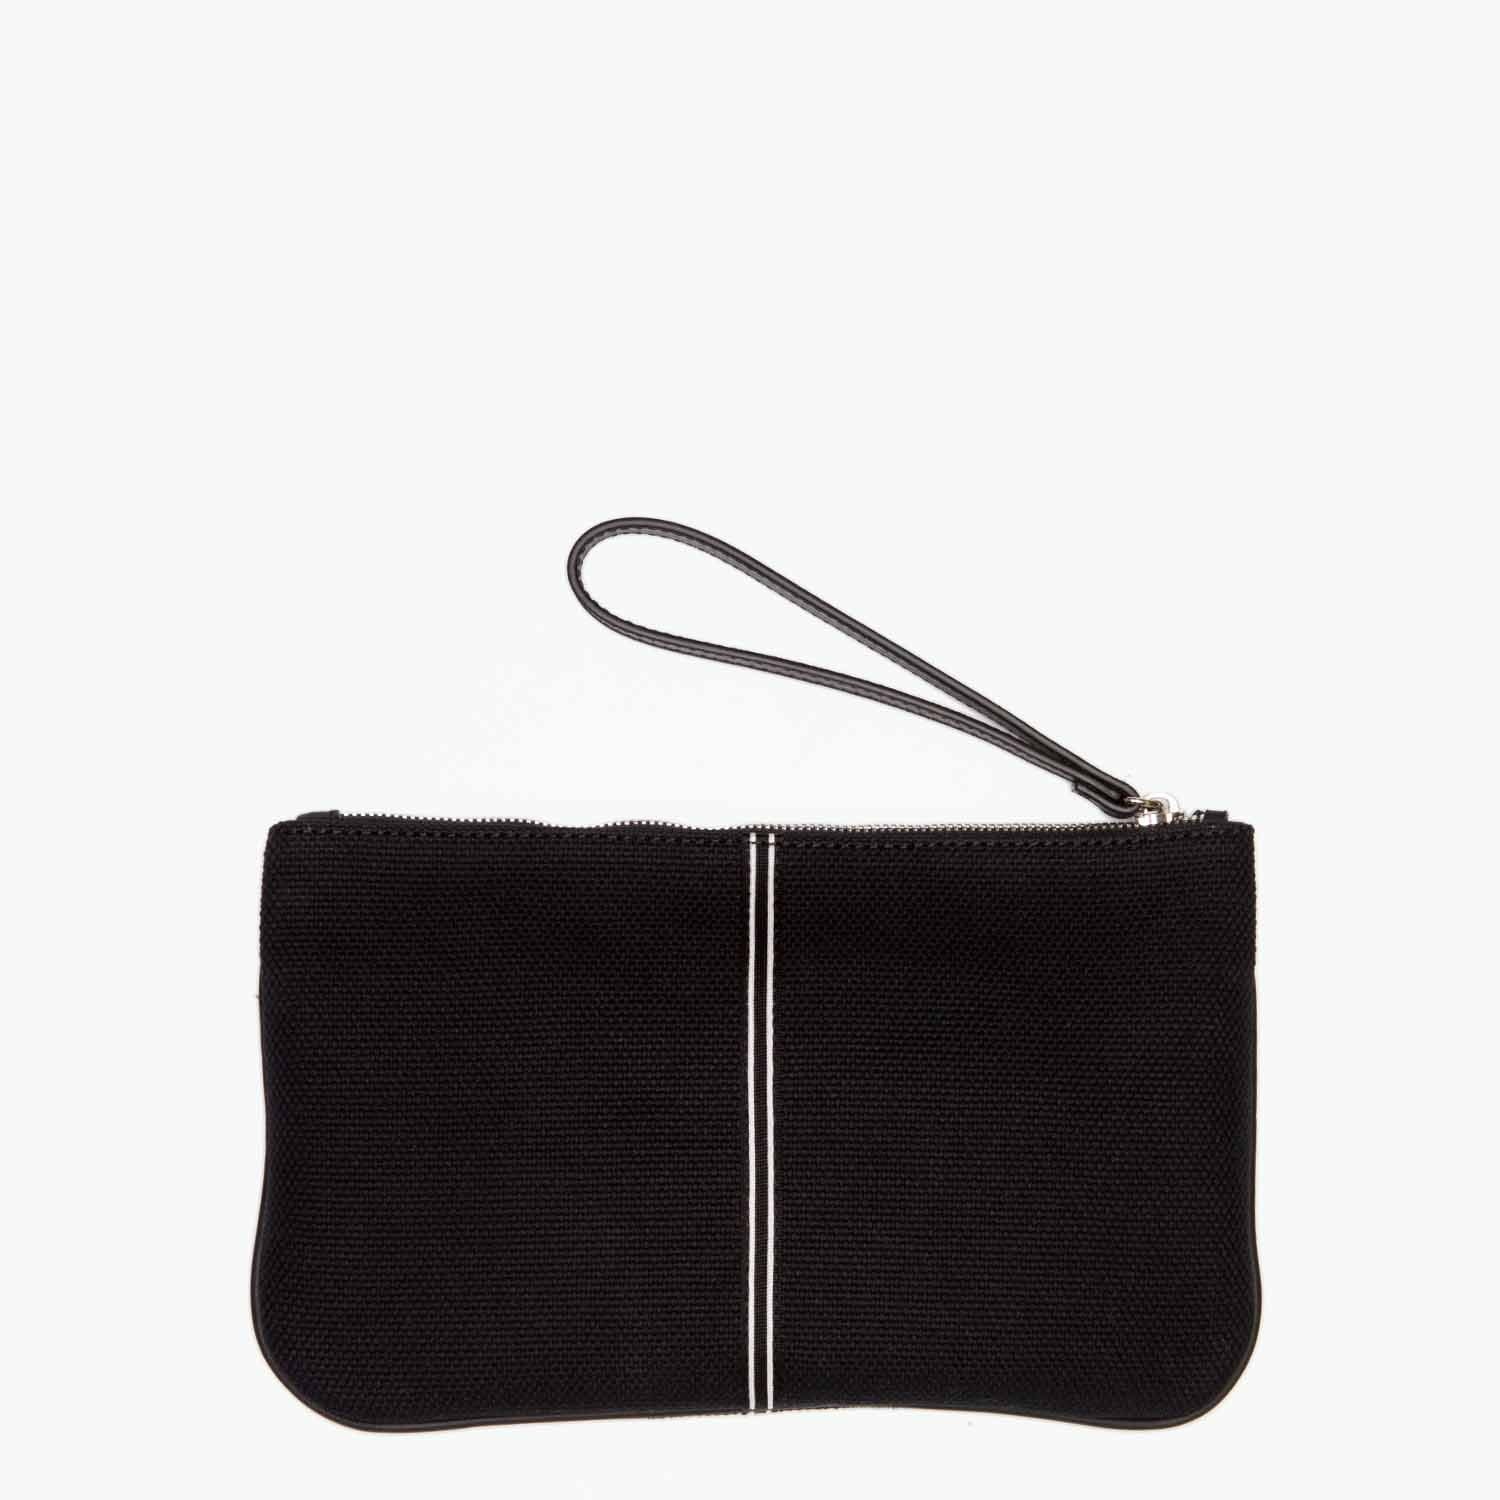 Gallia Clutch Cotton Canvas and Leather - Nosetta